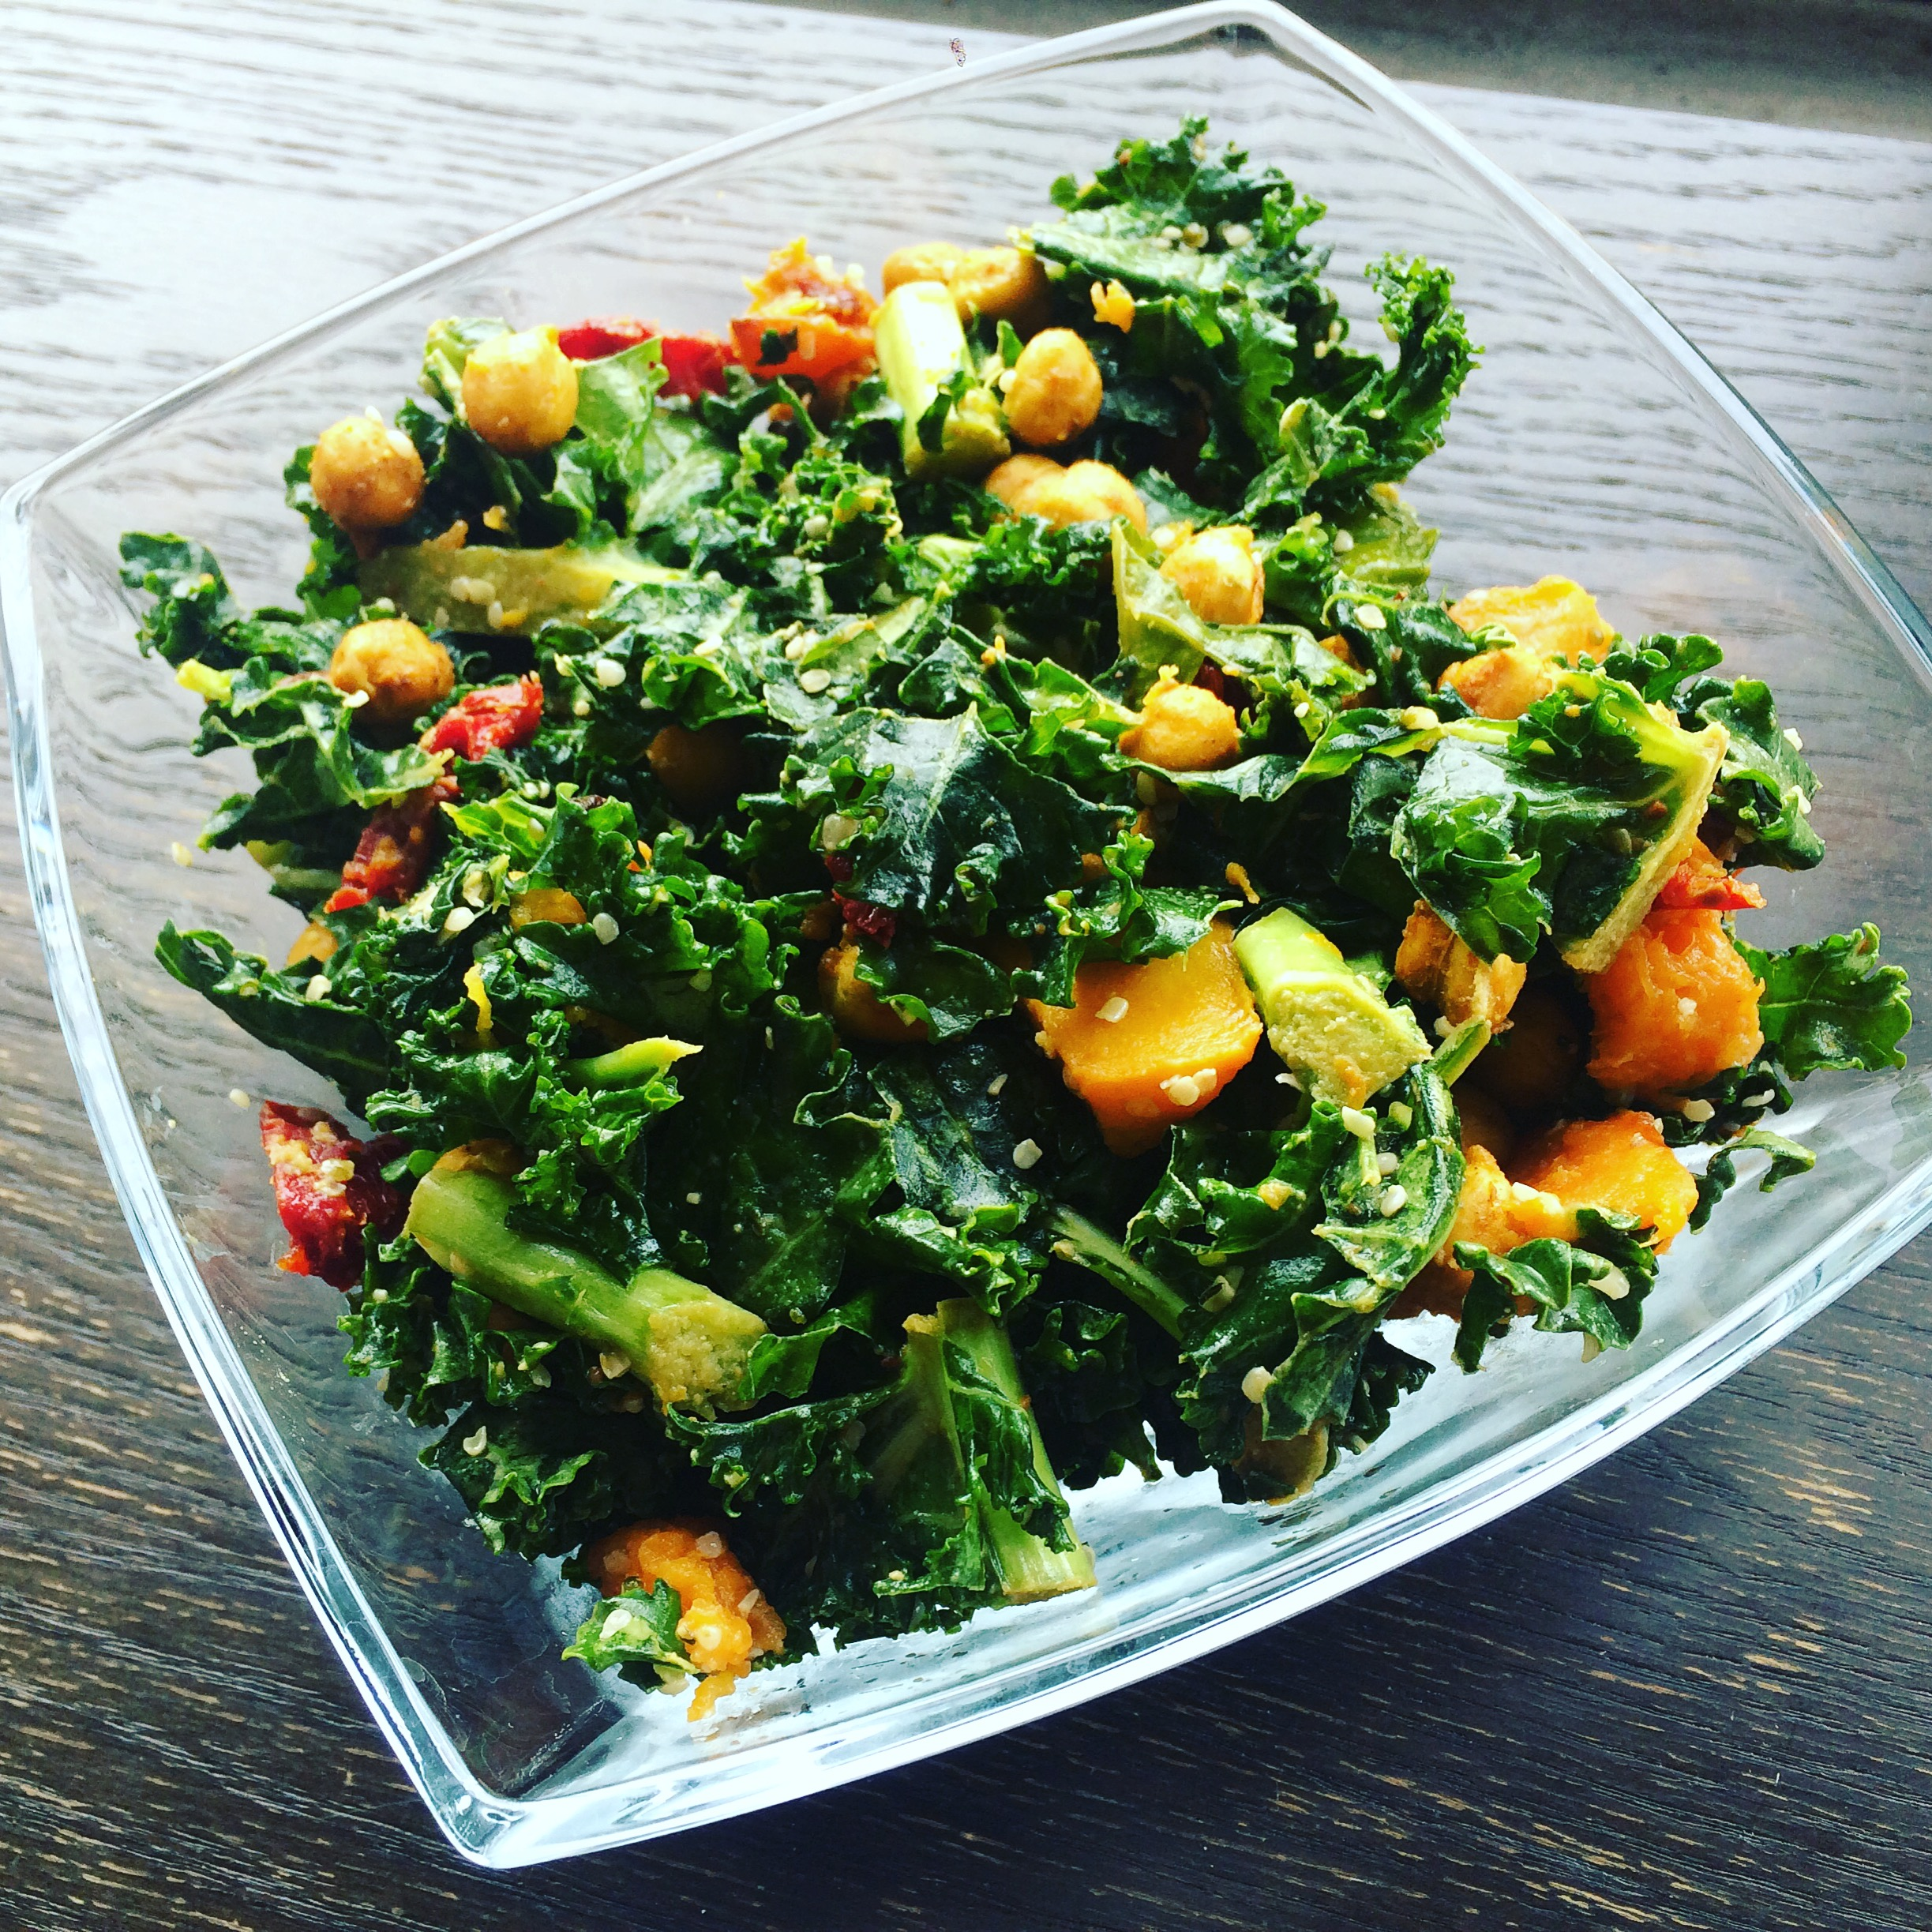 Meatless Meals that Don't Suck: Crispy Chickpea Kale Salad